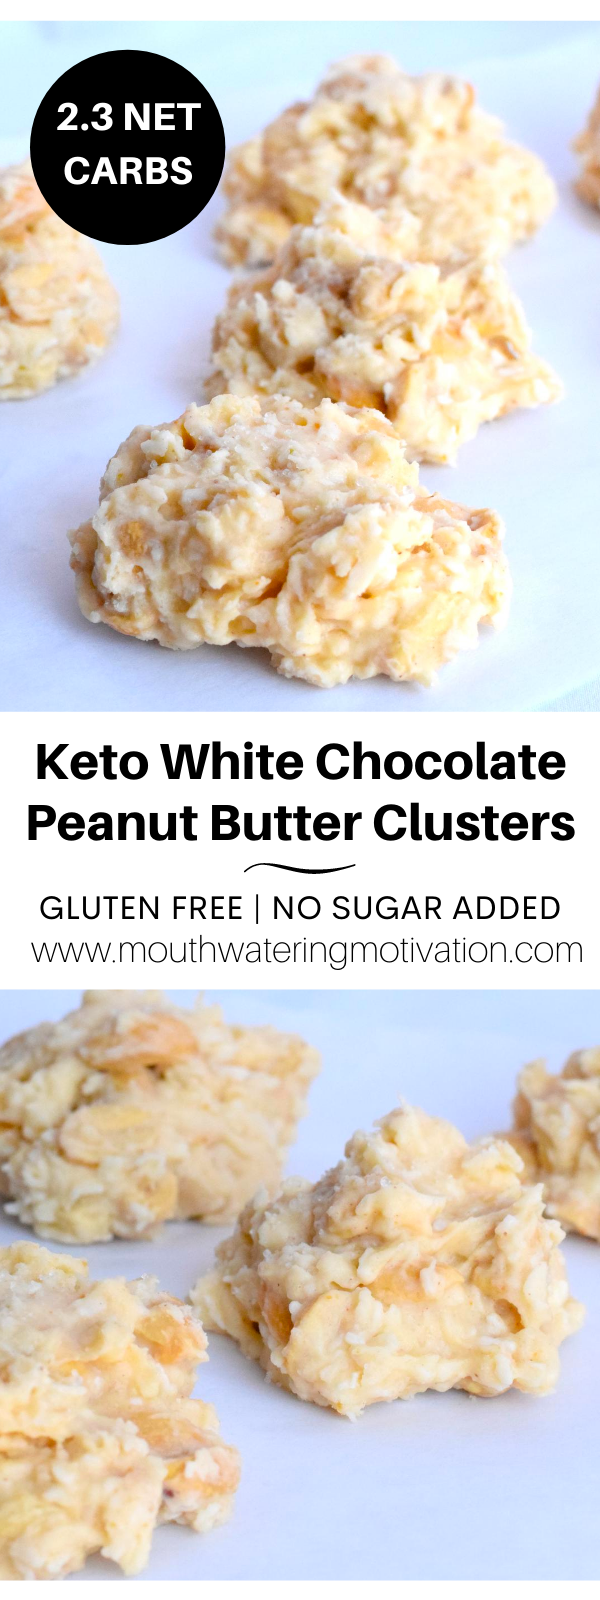 Keto White Chocolate Peanut Butter Clusters